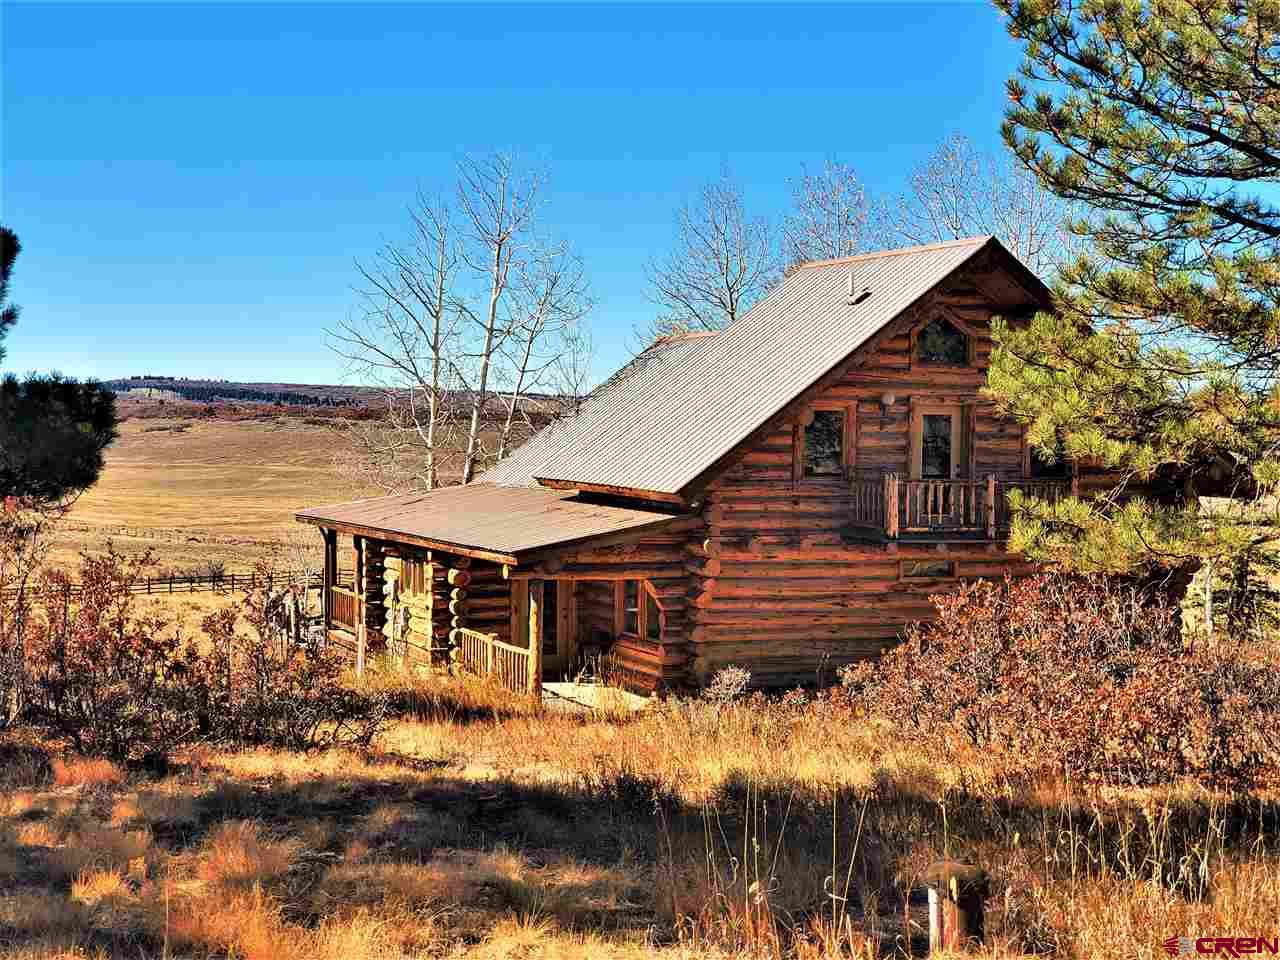 You couldn't ask for a better setting. This 3 bedroom 2 bath log home is just breath taking. Watch the wildlife and scenery from every direction. Year round access and serenity that goes on forever.